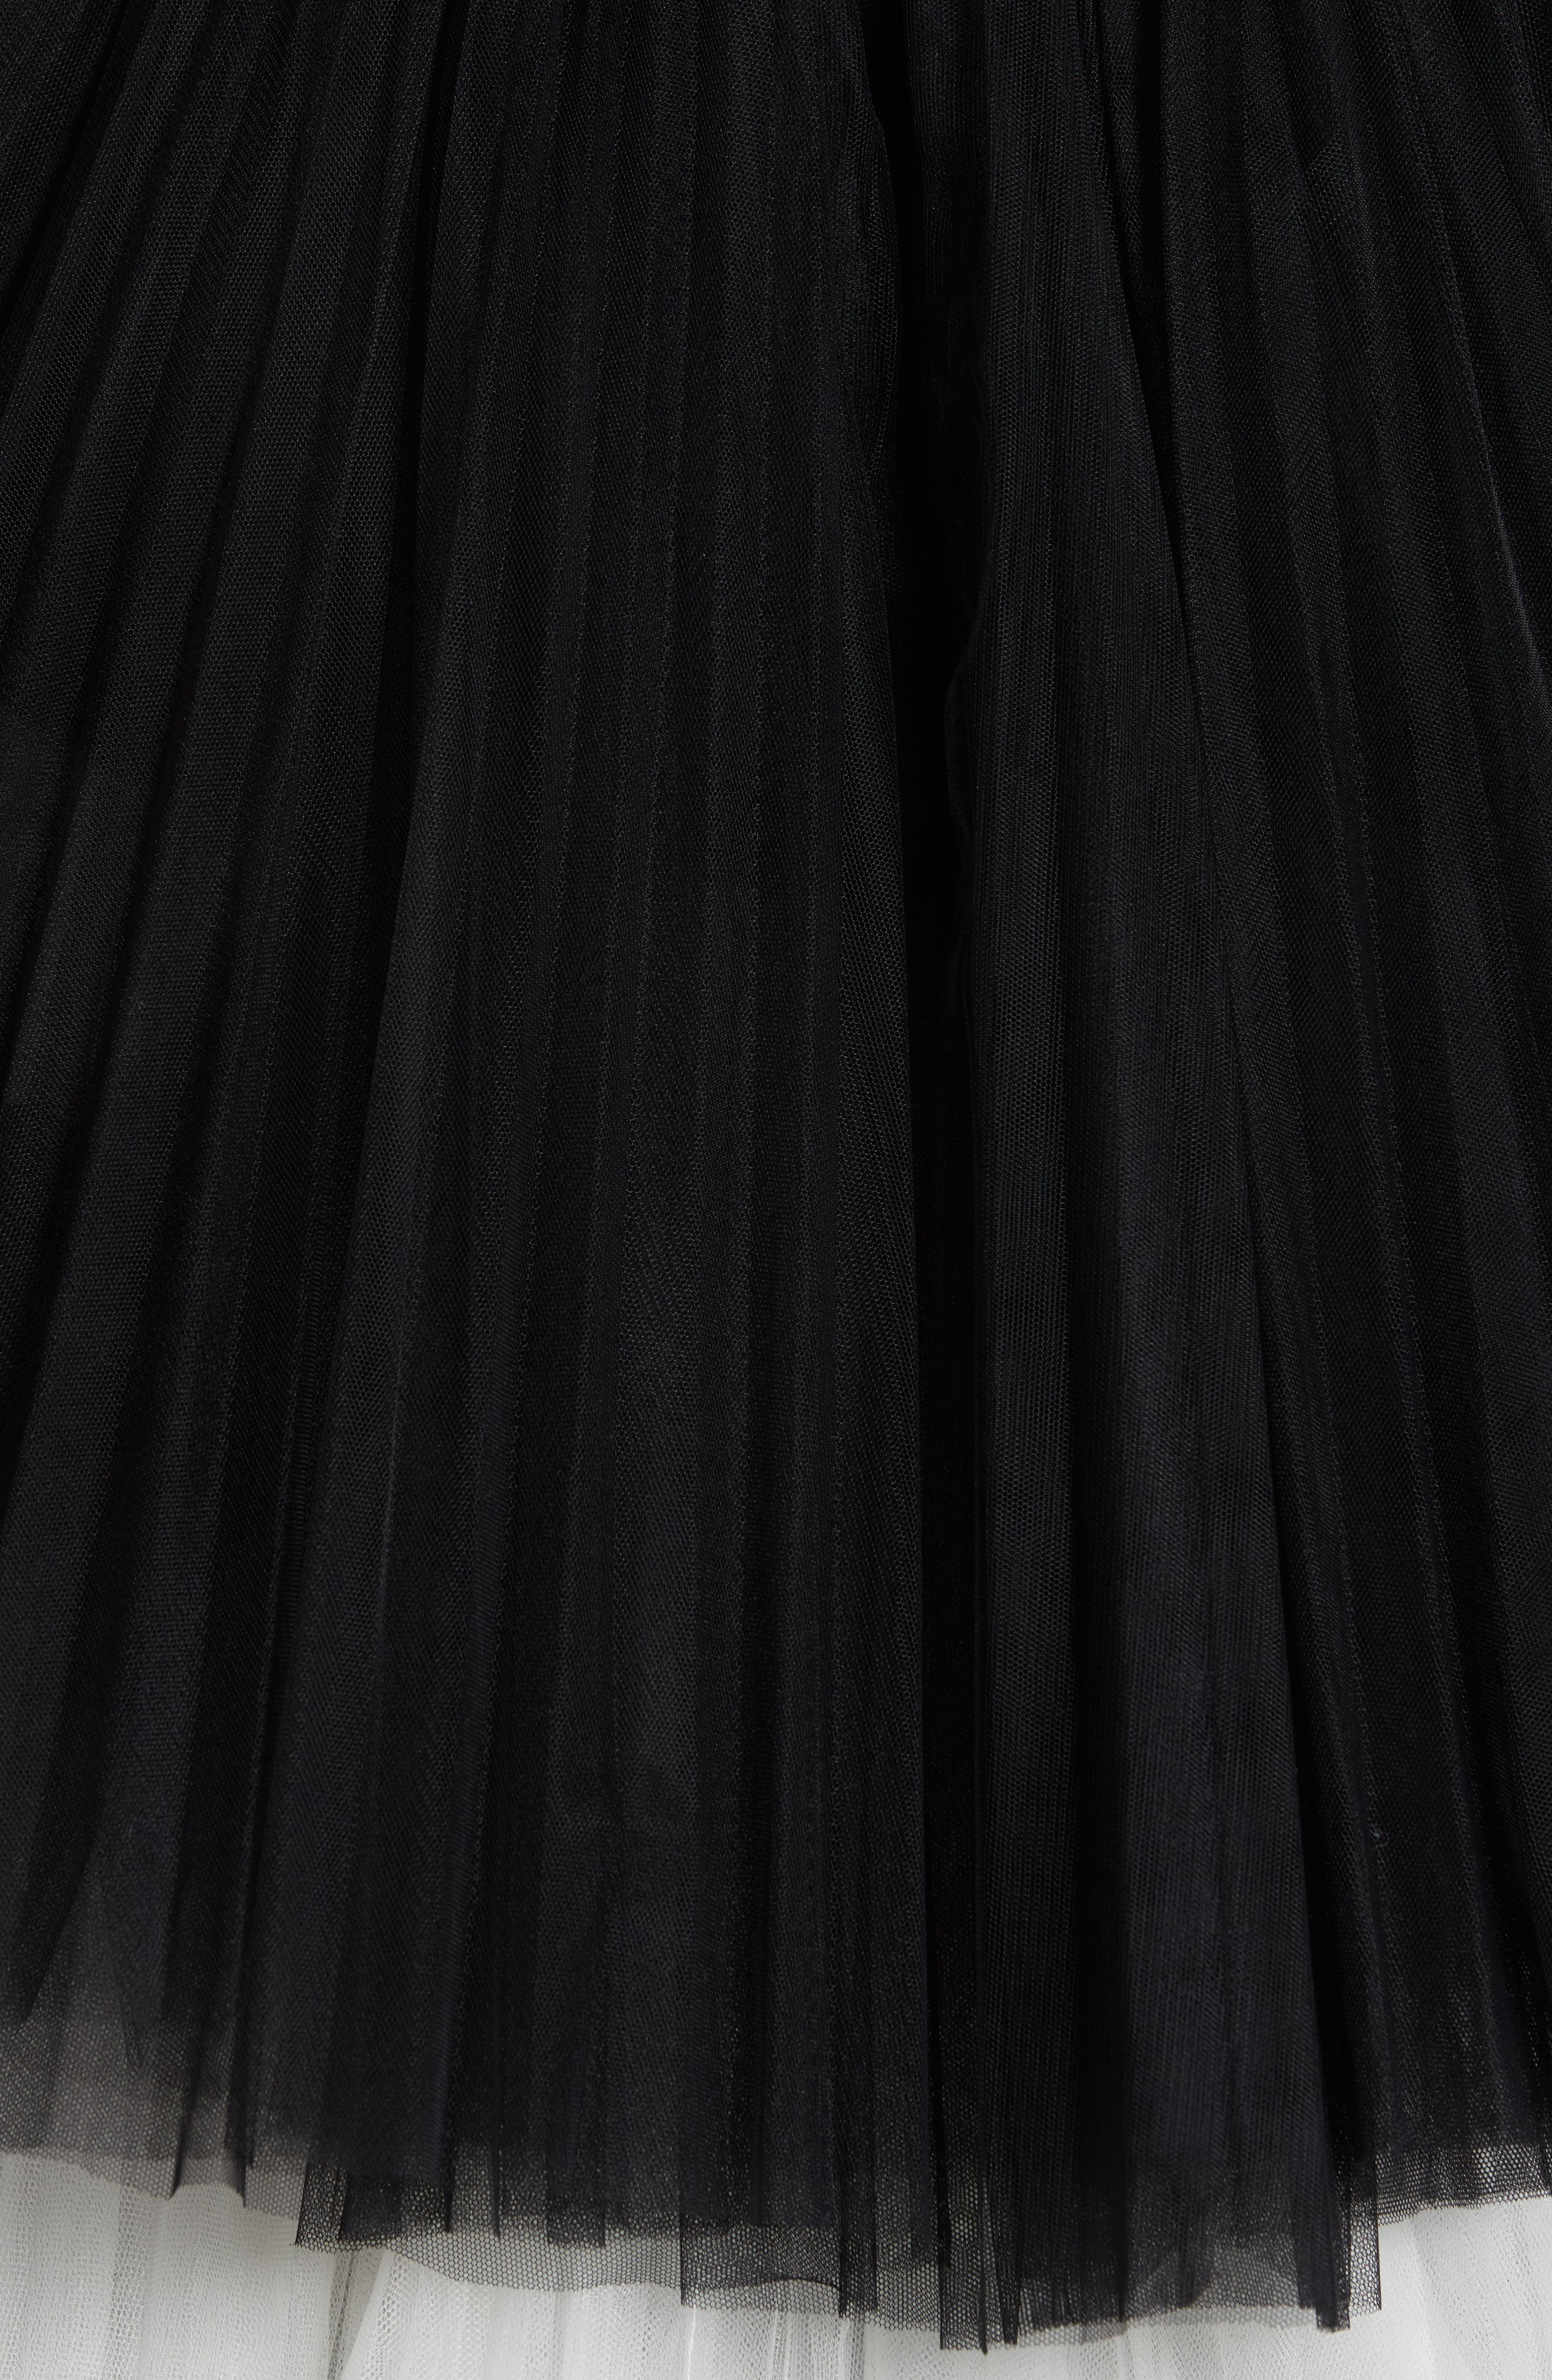 Strapless Layered Tulle Gown,                             Alternate thumbnail 6, color,                             Black/White